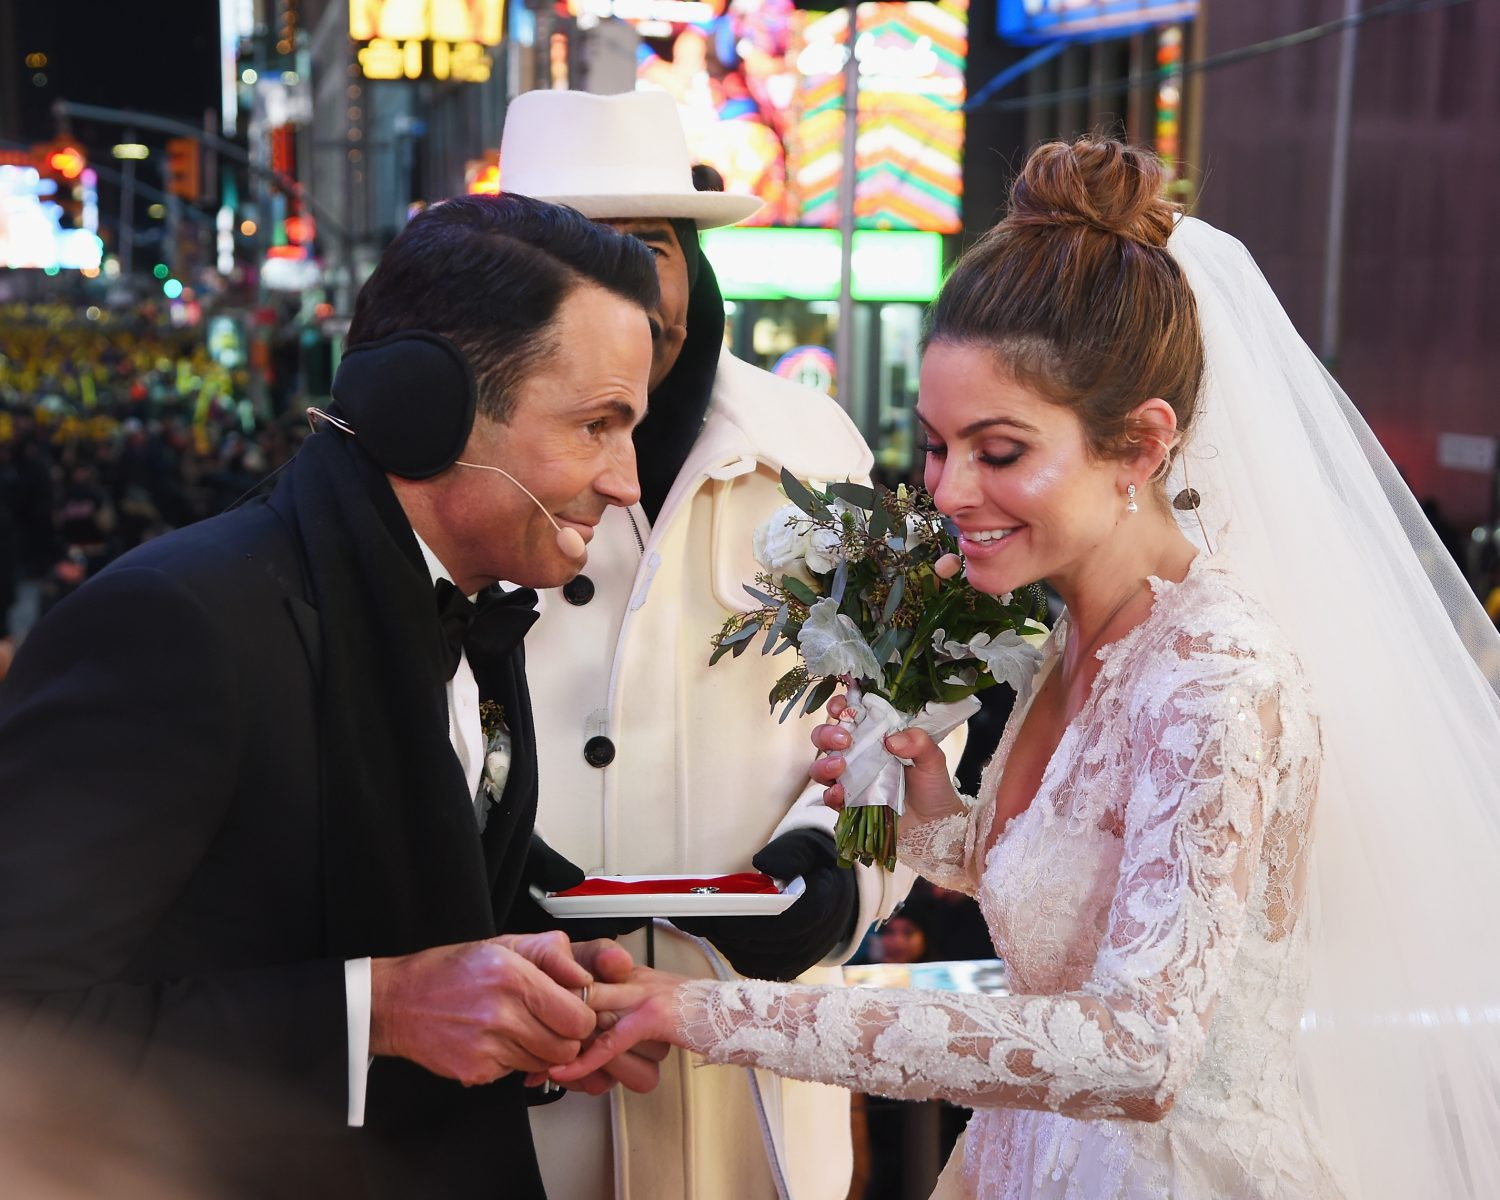 Maria Menounos Marries at Times Square on New Year's Eve